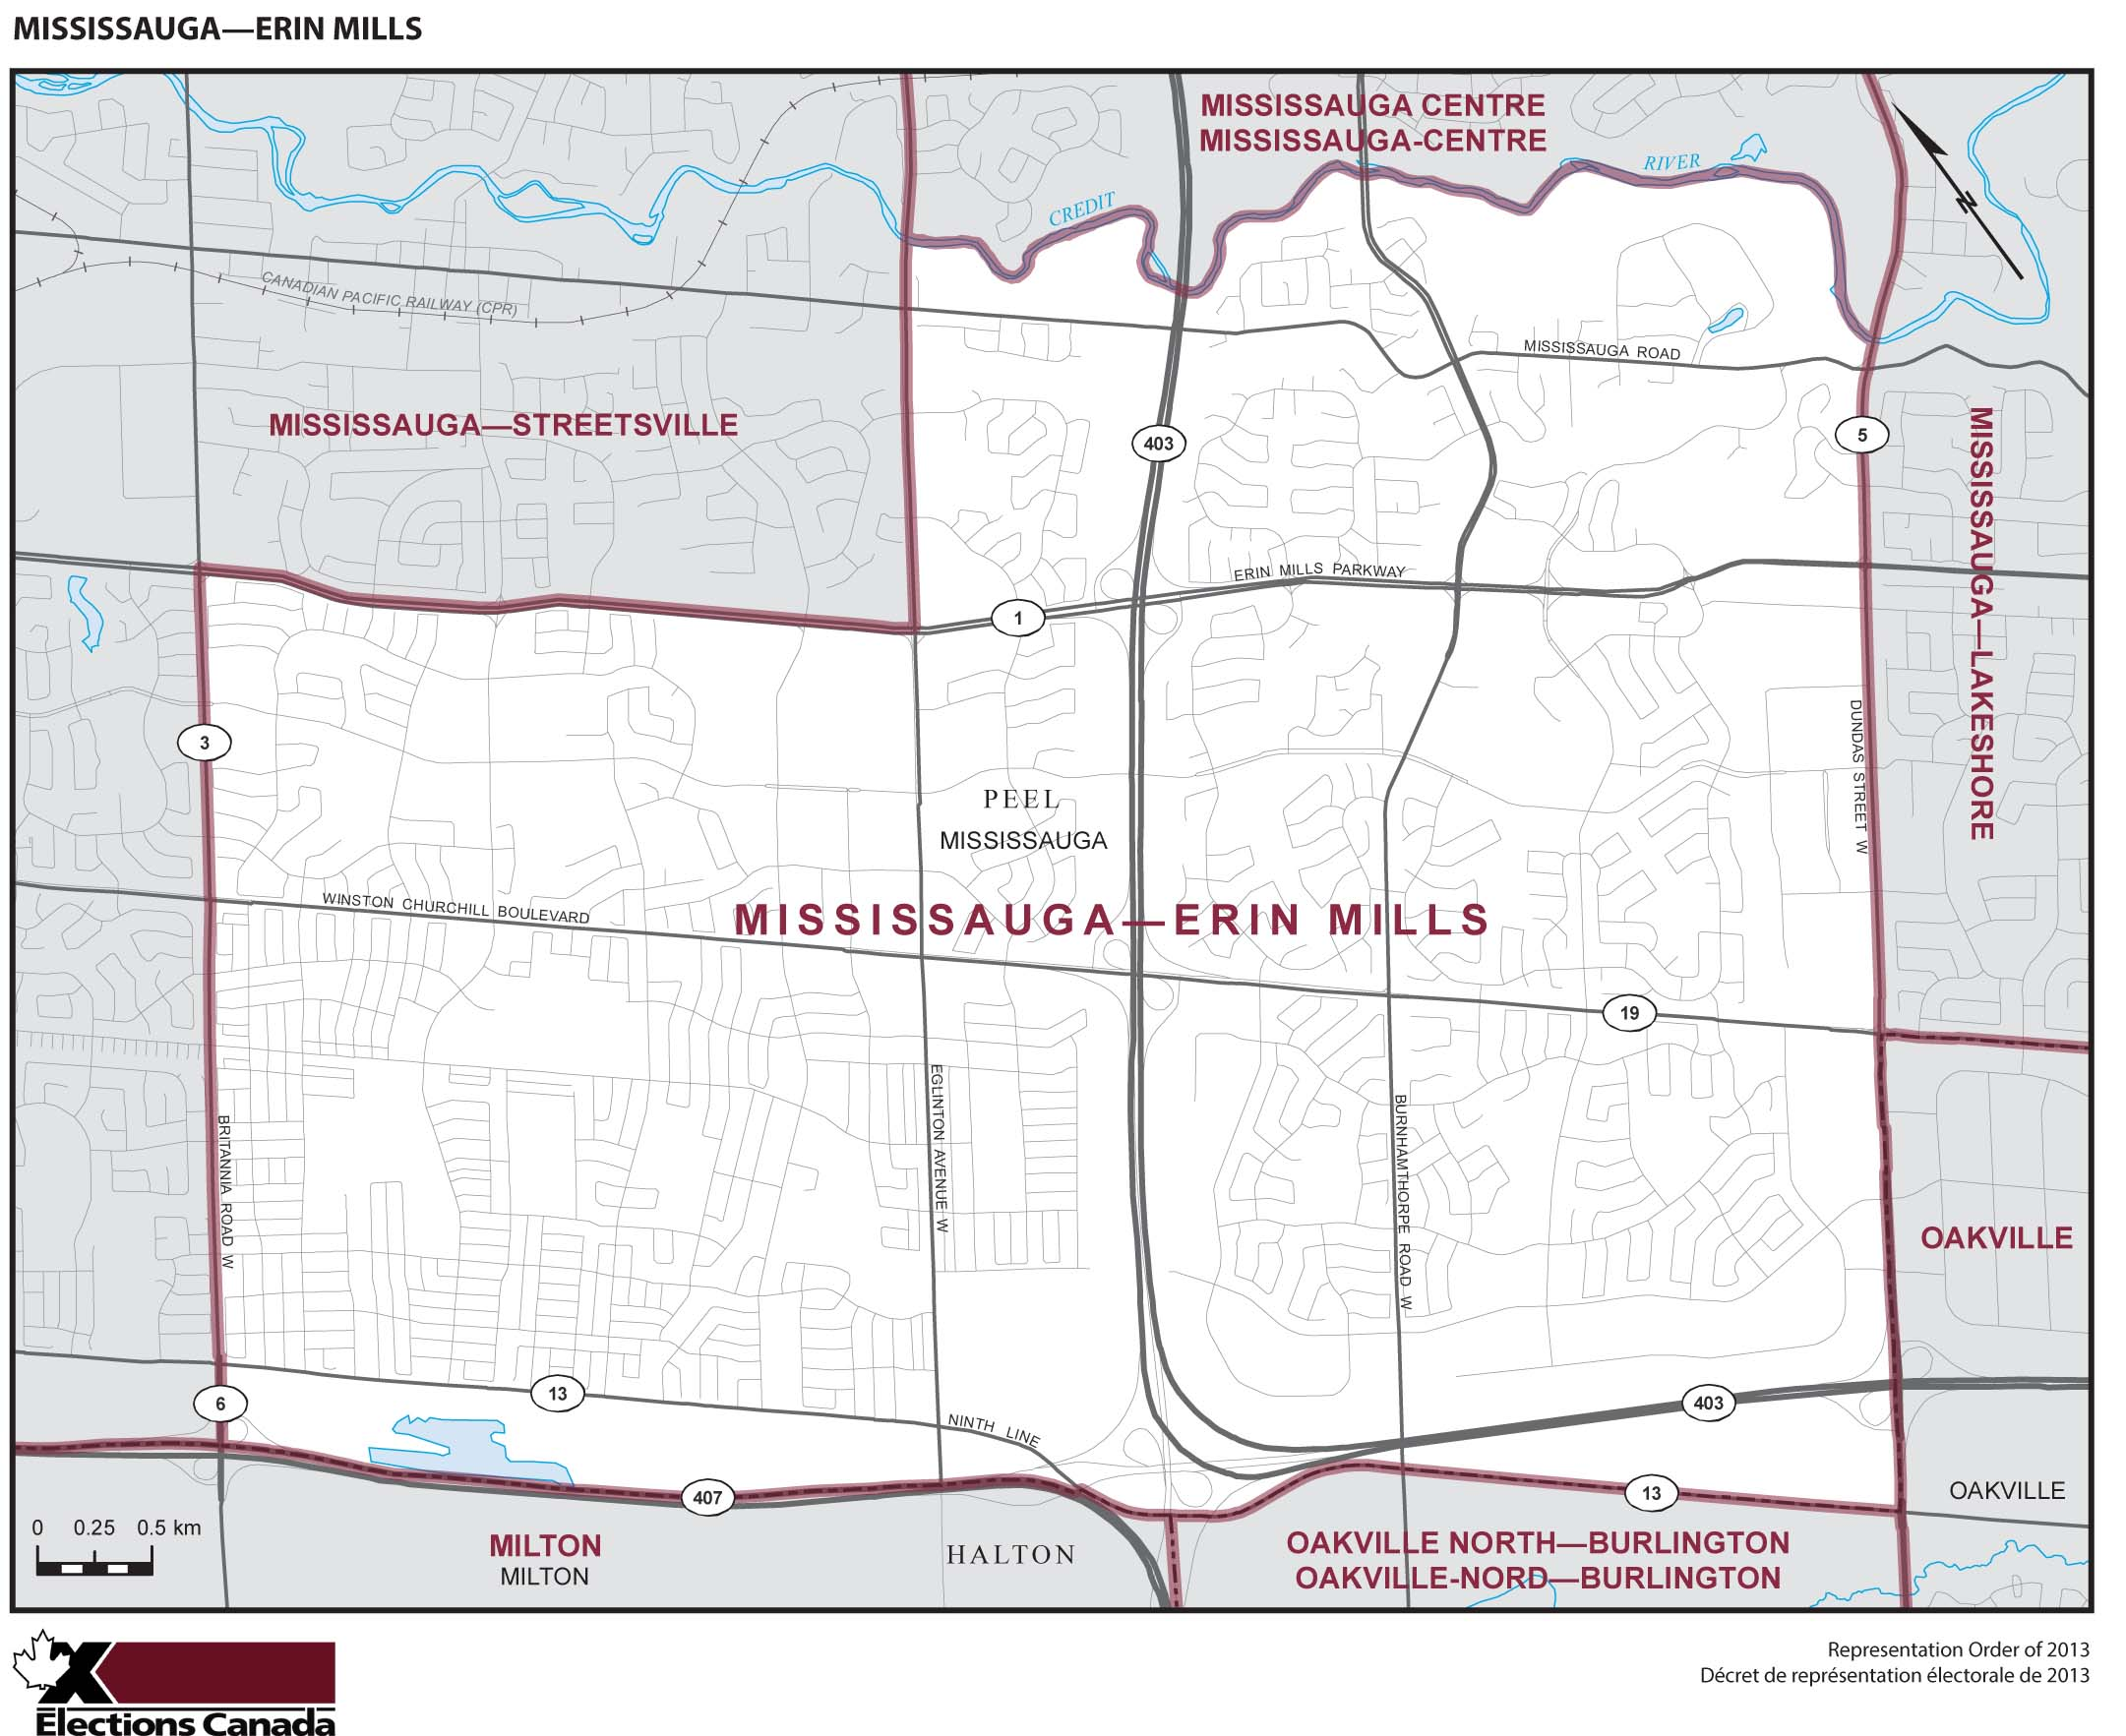 Map: Mississauga--Erin Mills, Federal electoral district, 2013 Representation Order (in white), Ontario